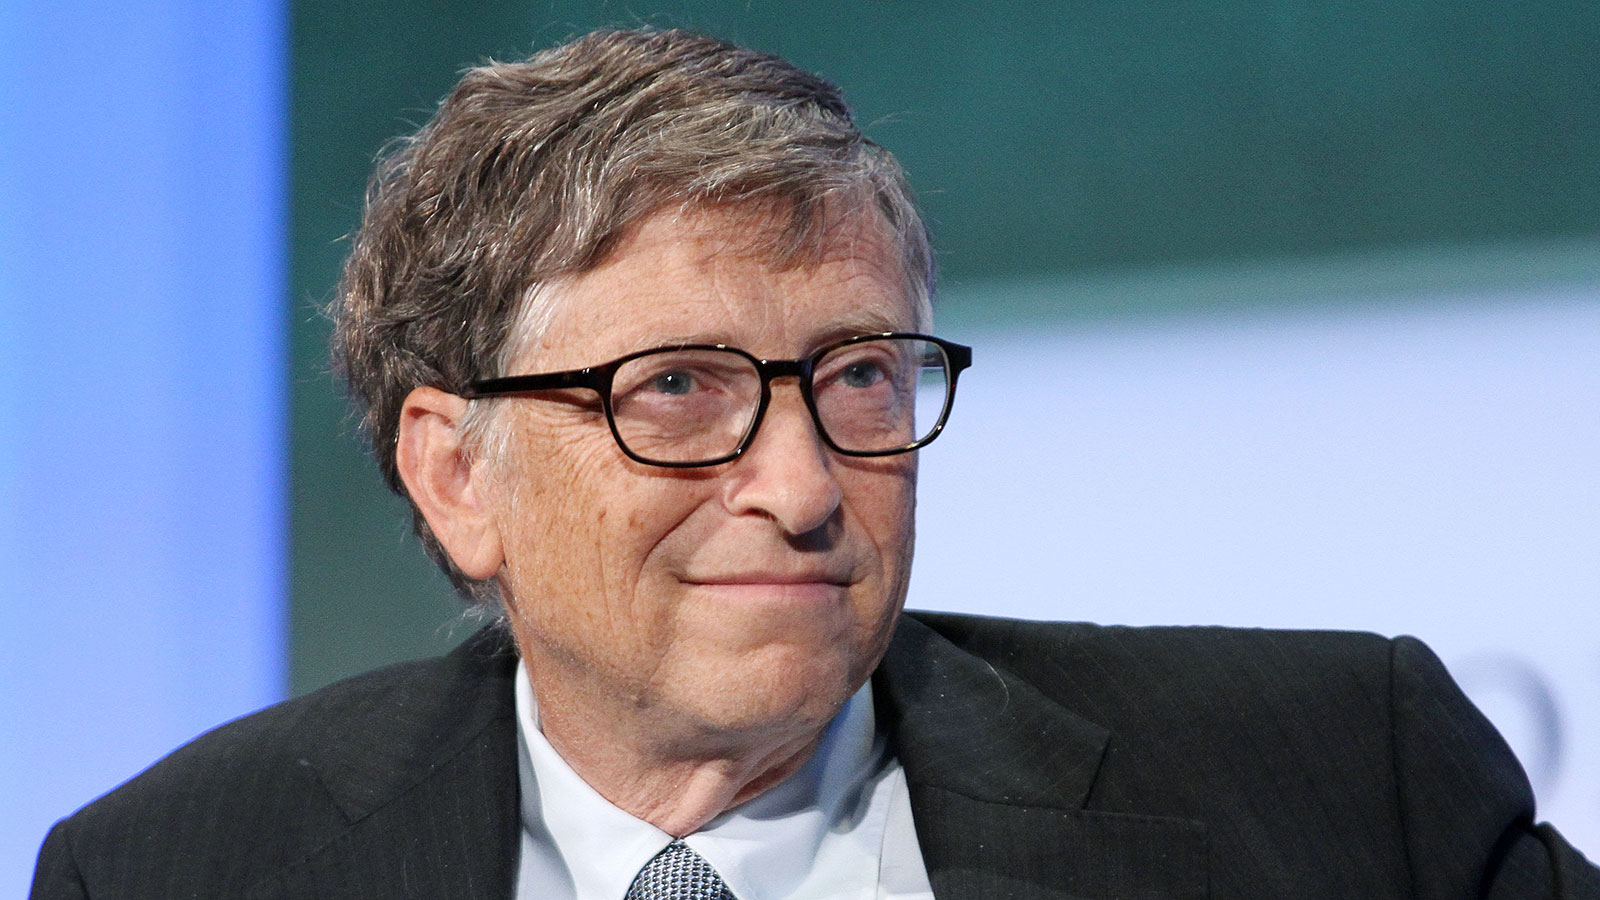 How Bill Gates and Microsoft are trying find a cure for Coronavirus as fast as possible